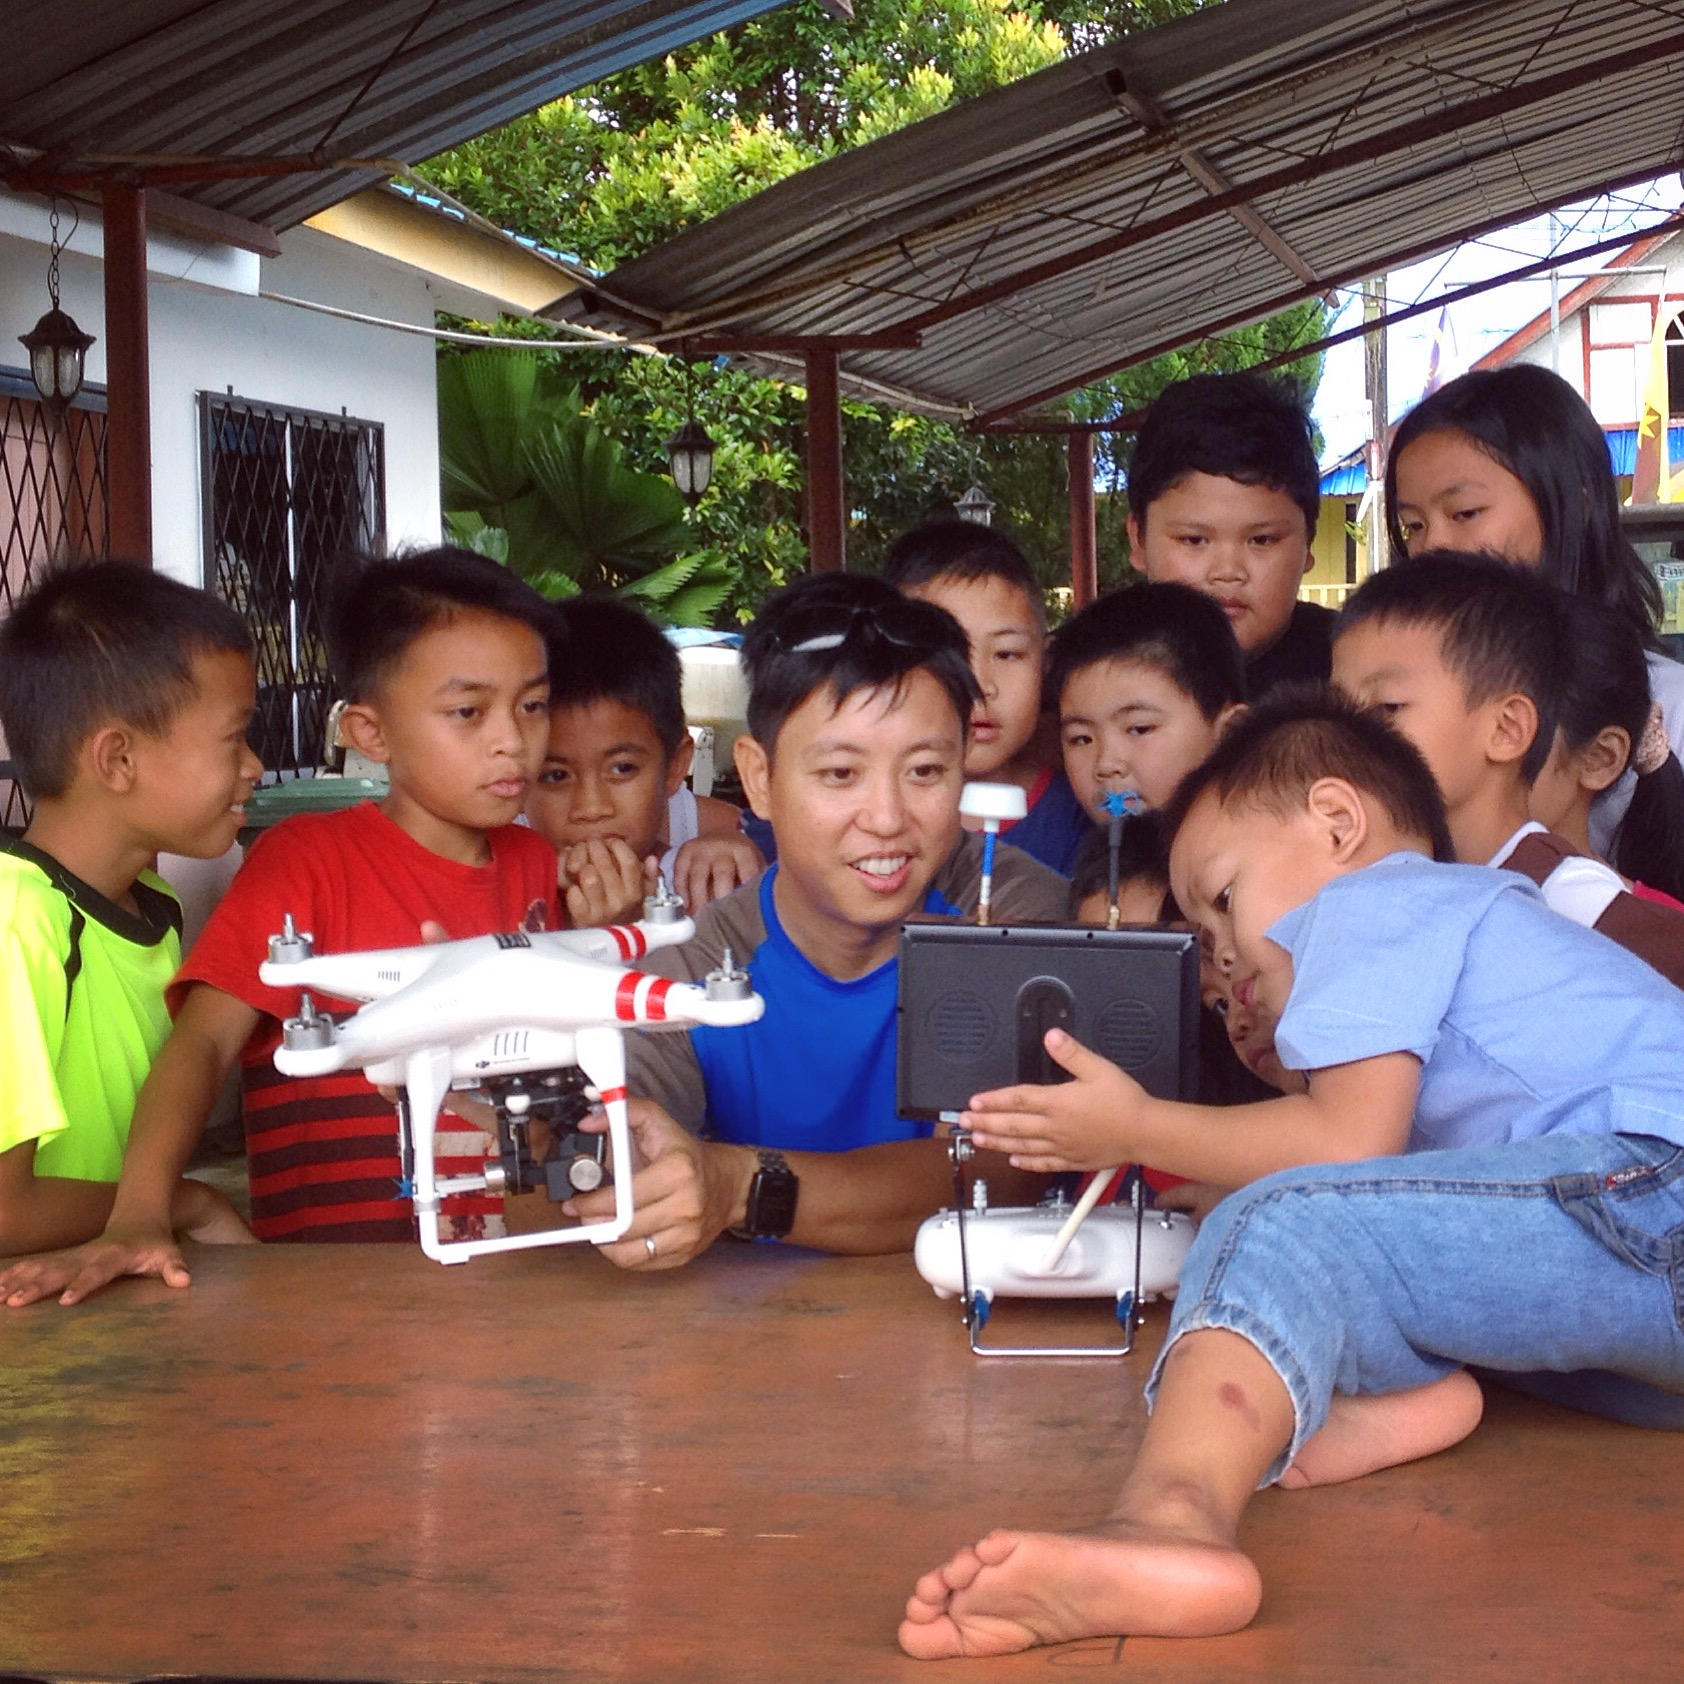 Borneo kids enjoying watching a video clip of themselves from the air.